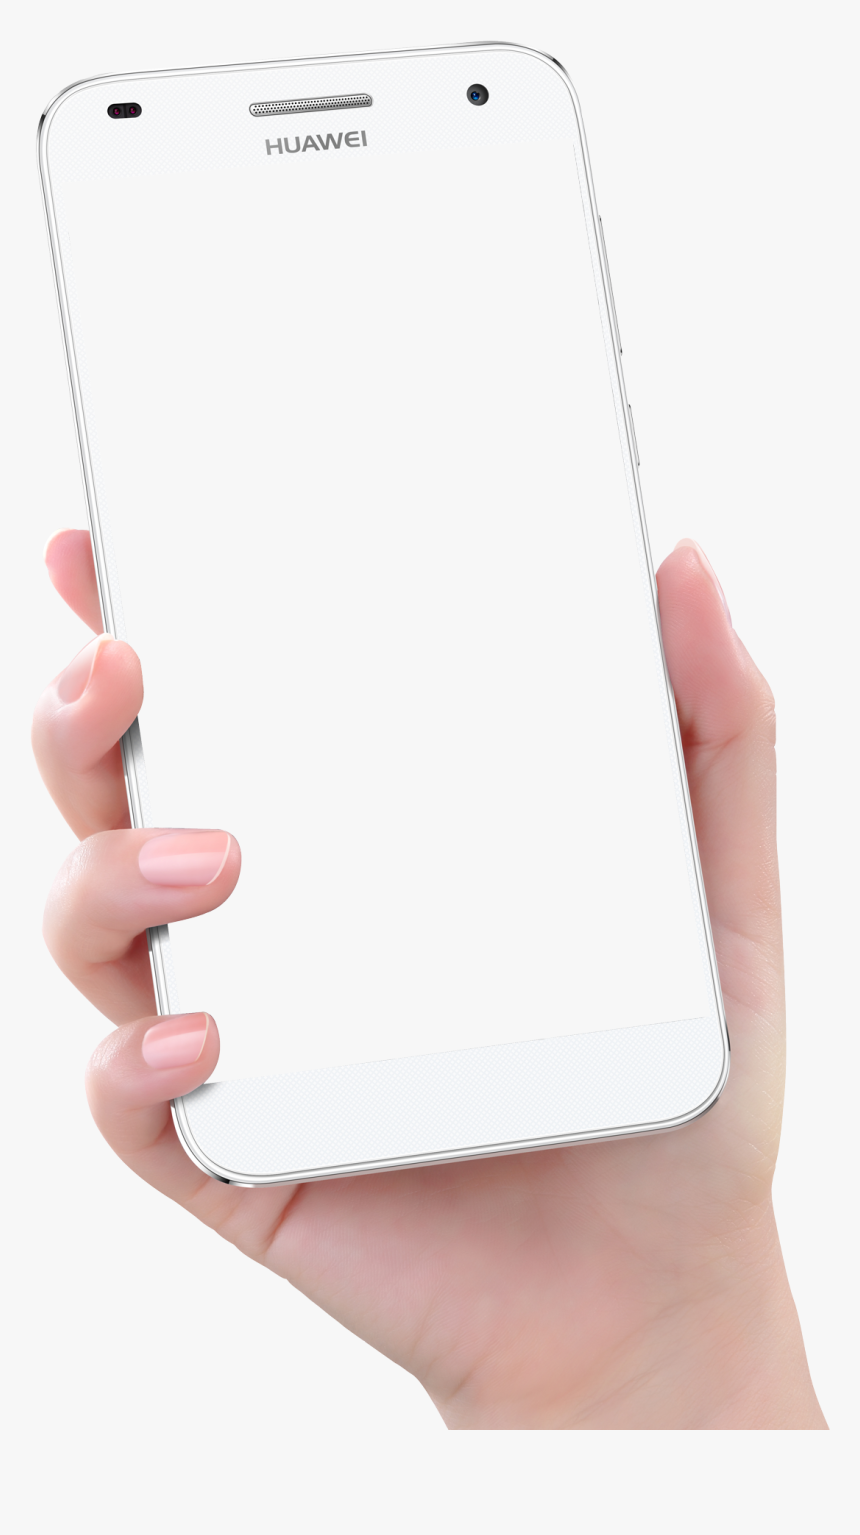 Mobile Frame Png Hand Mobile Phone Png Transparent Png Kindpng The clip art image is transparent background and png format which can be easily used for any free creative project. mobile frame png hand mobile phone